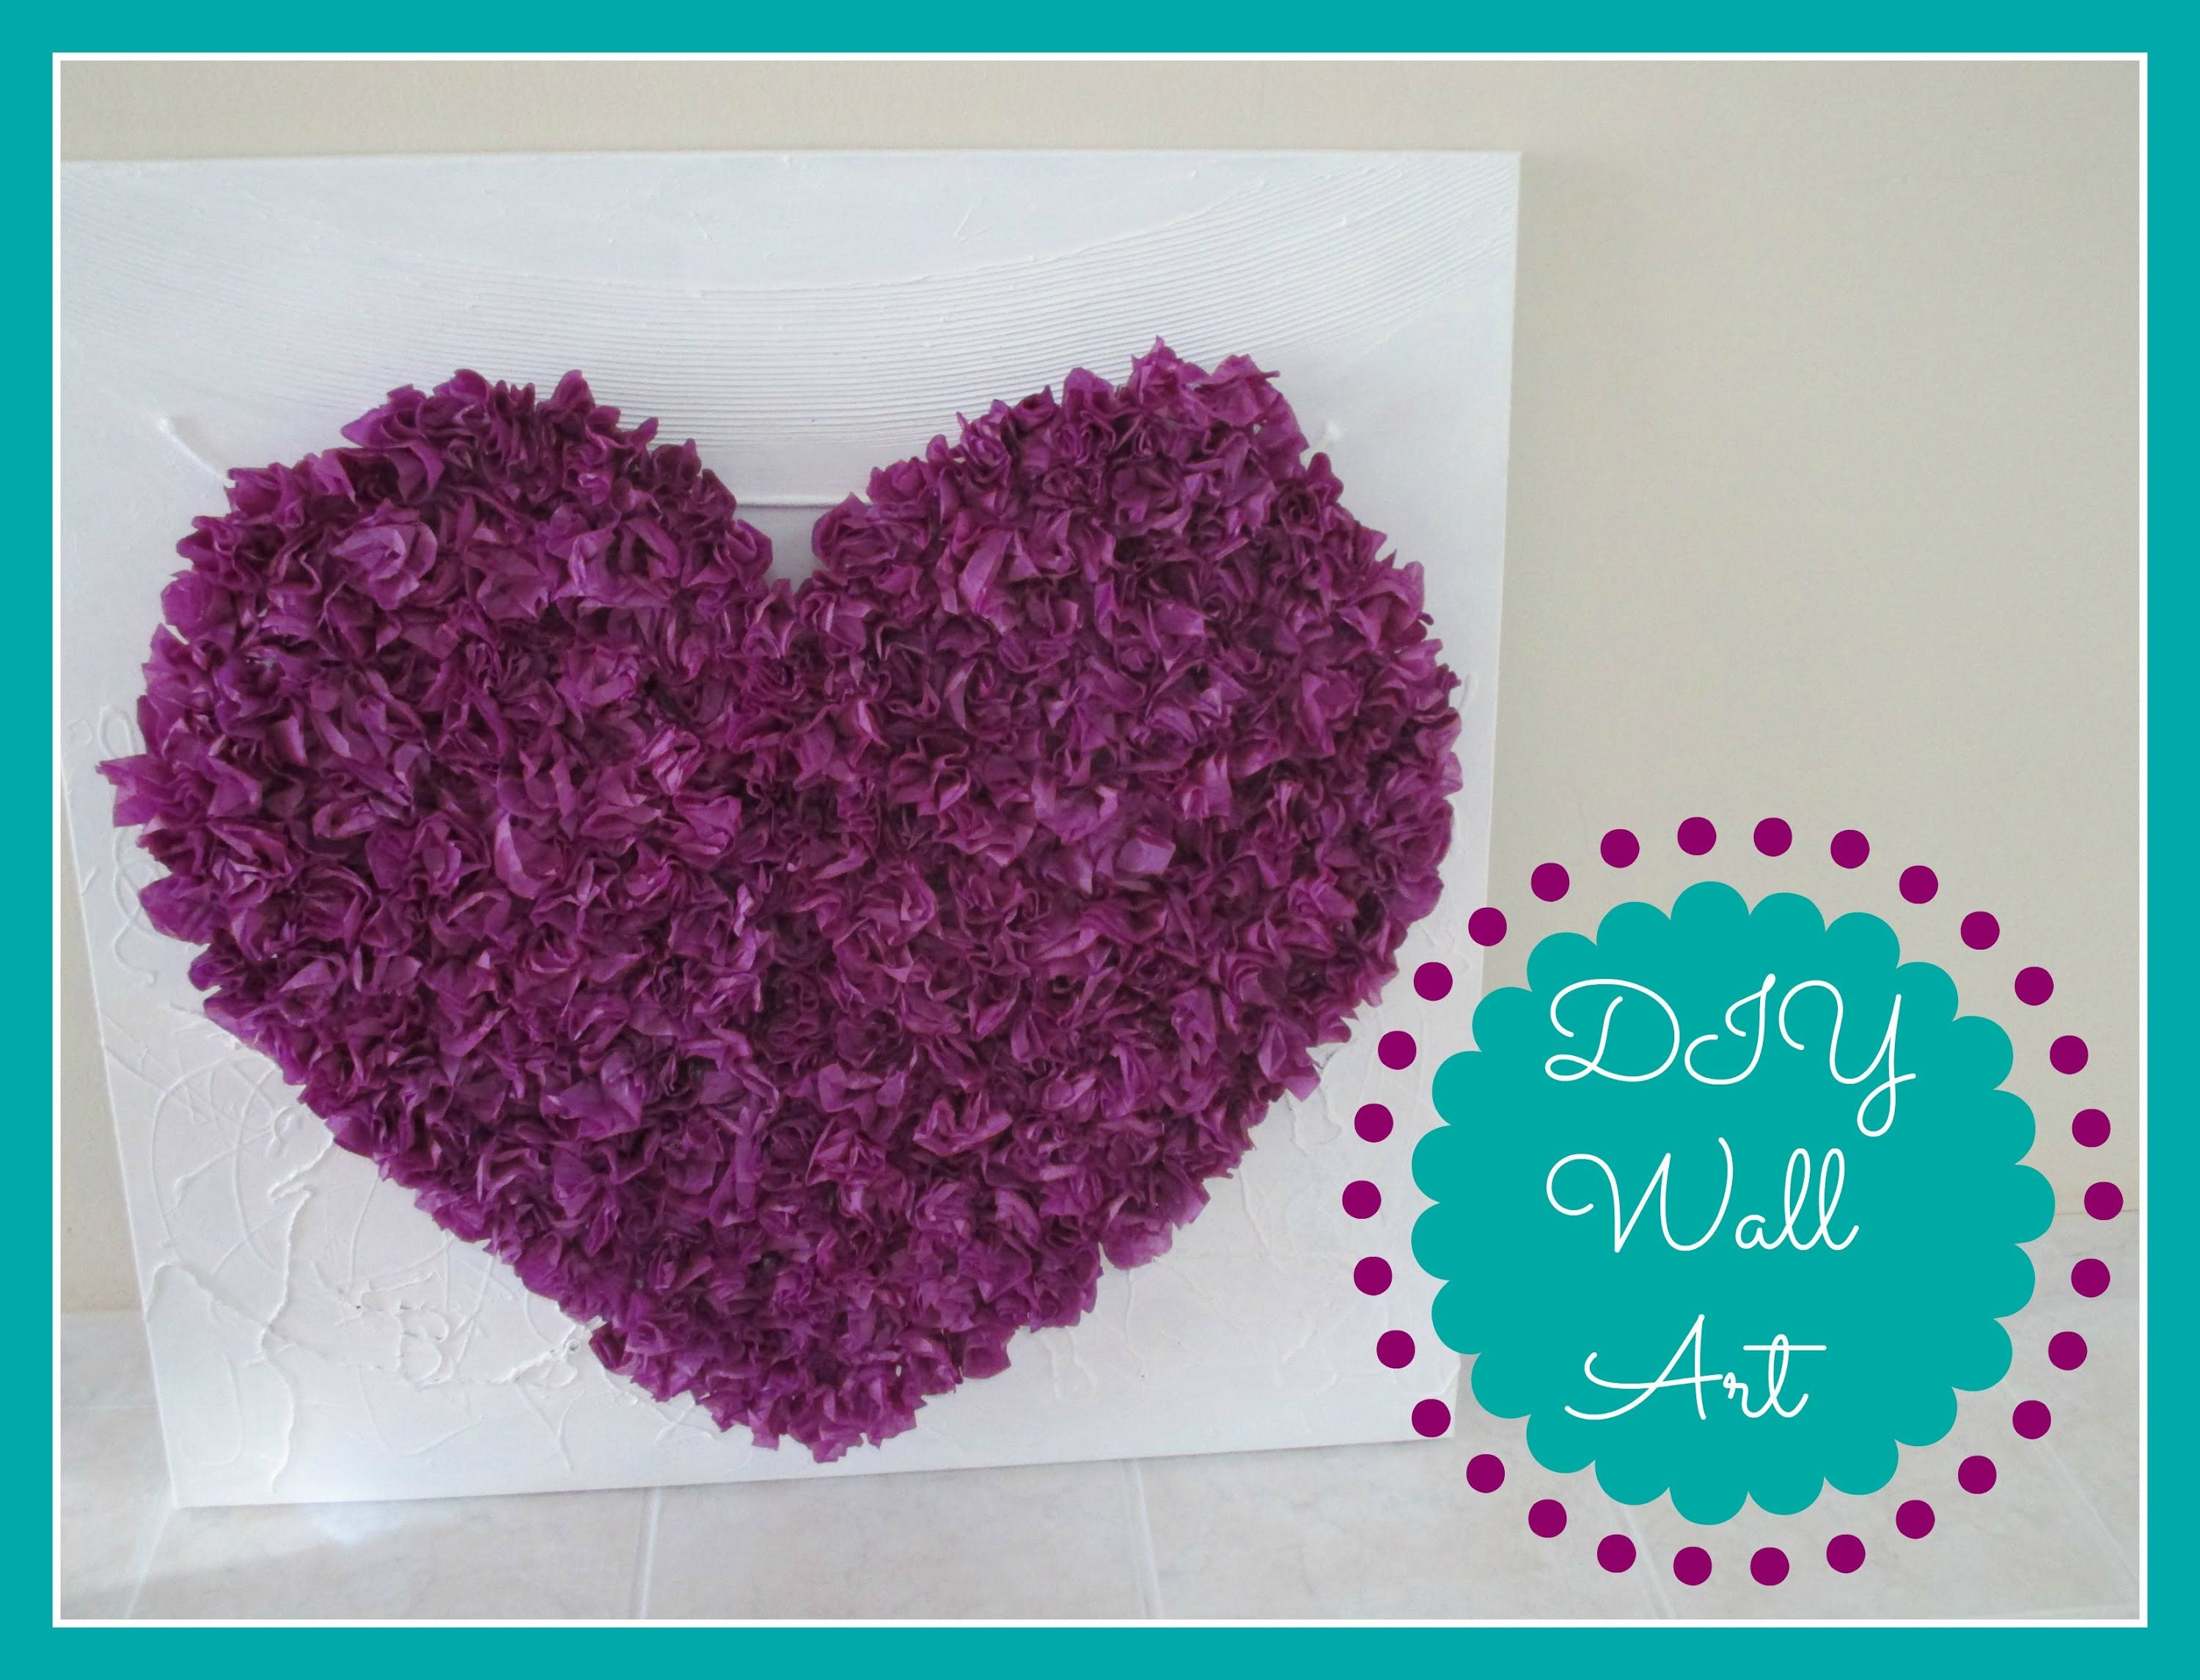 Diy Room Decor Tissue Paper Heart Wall Art Tissue Paper Flowers Diy Paper Flower Tutorial Paper Flowers Diy